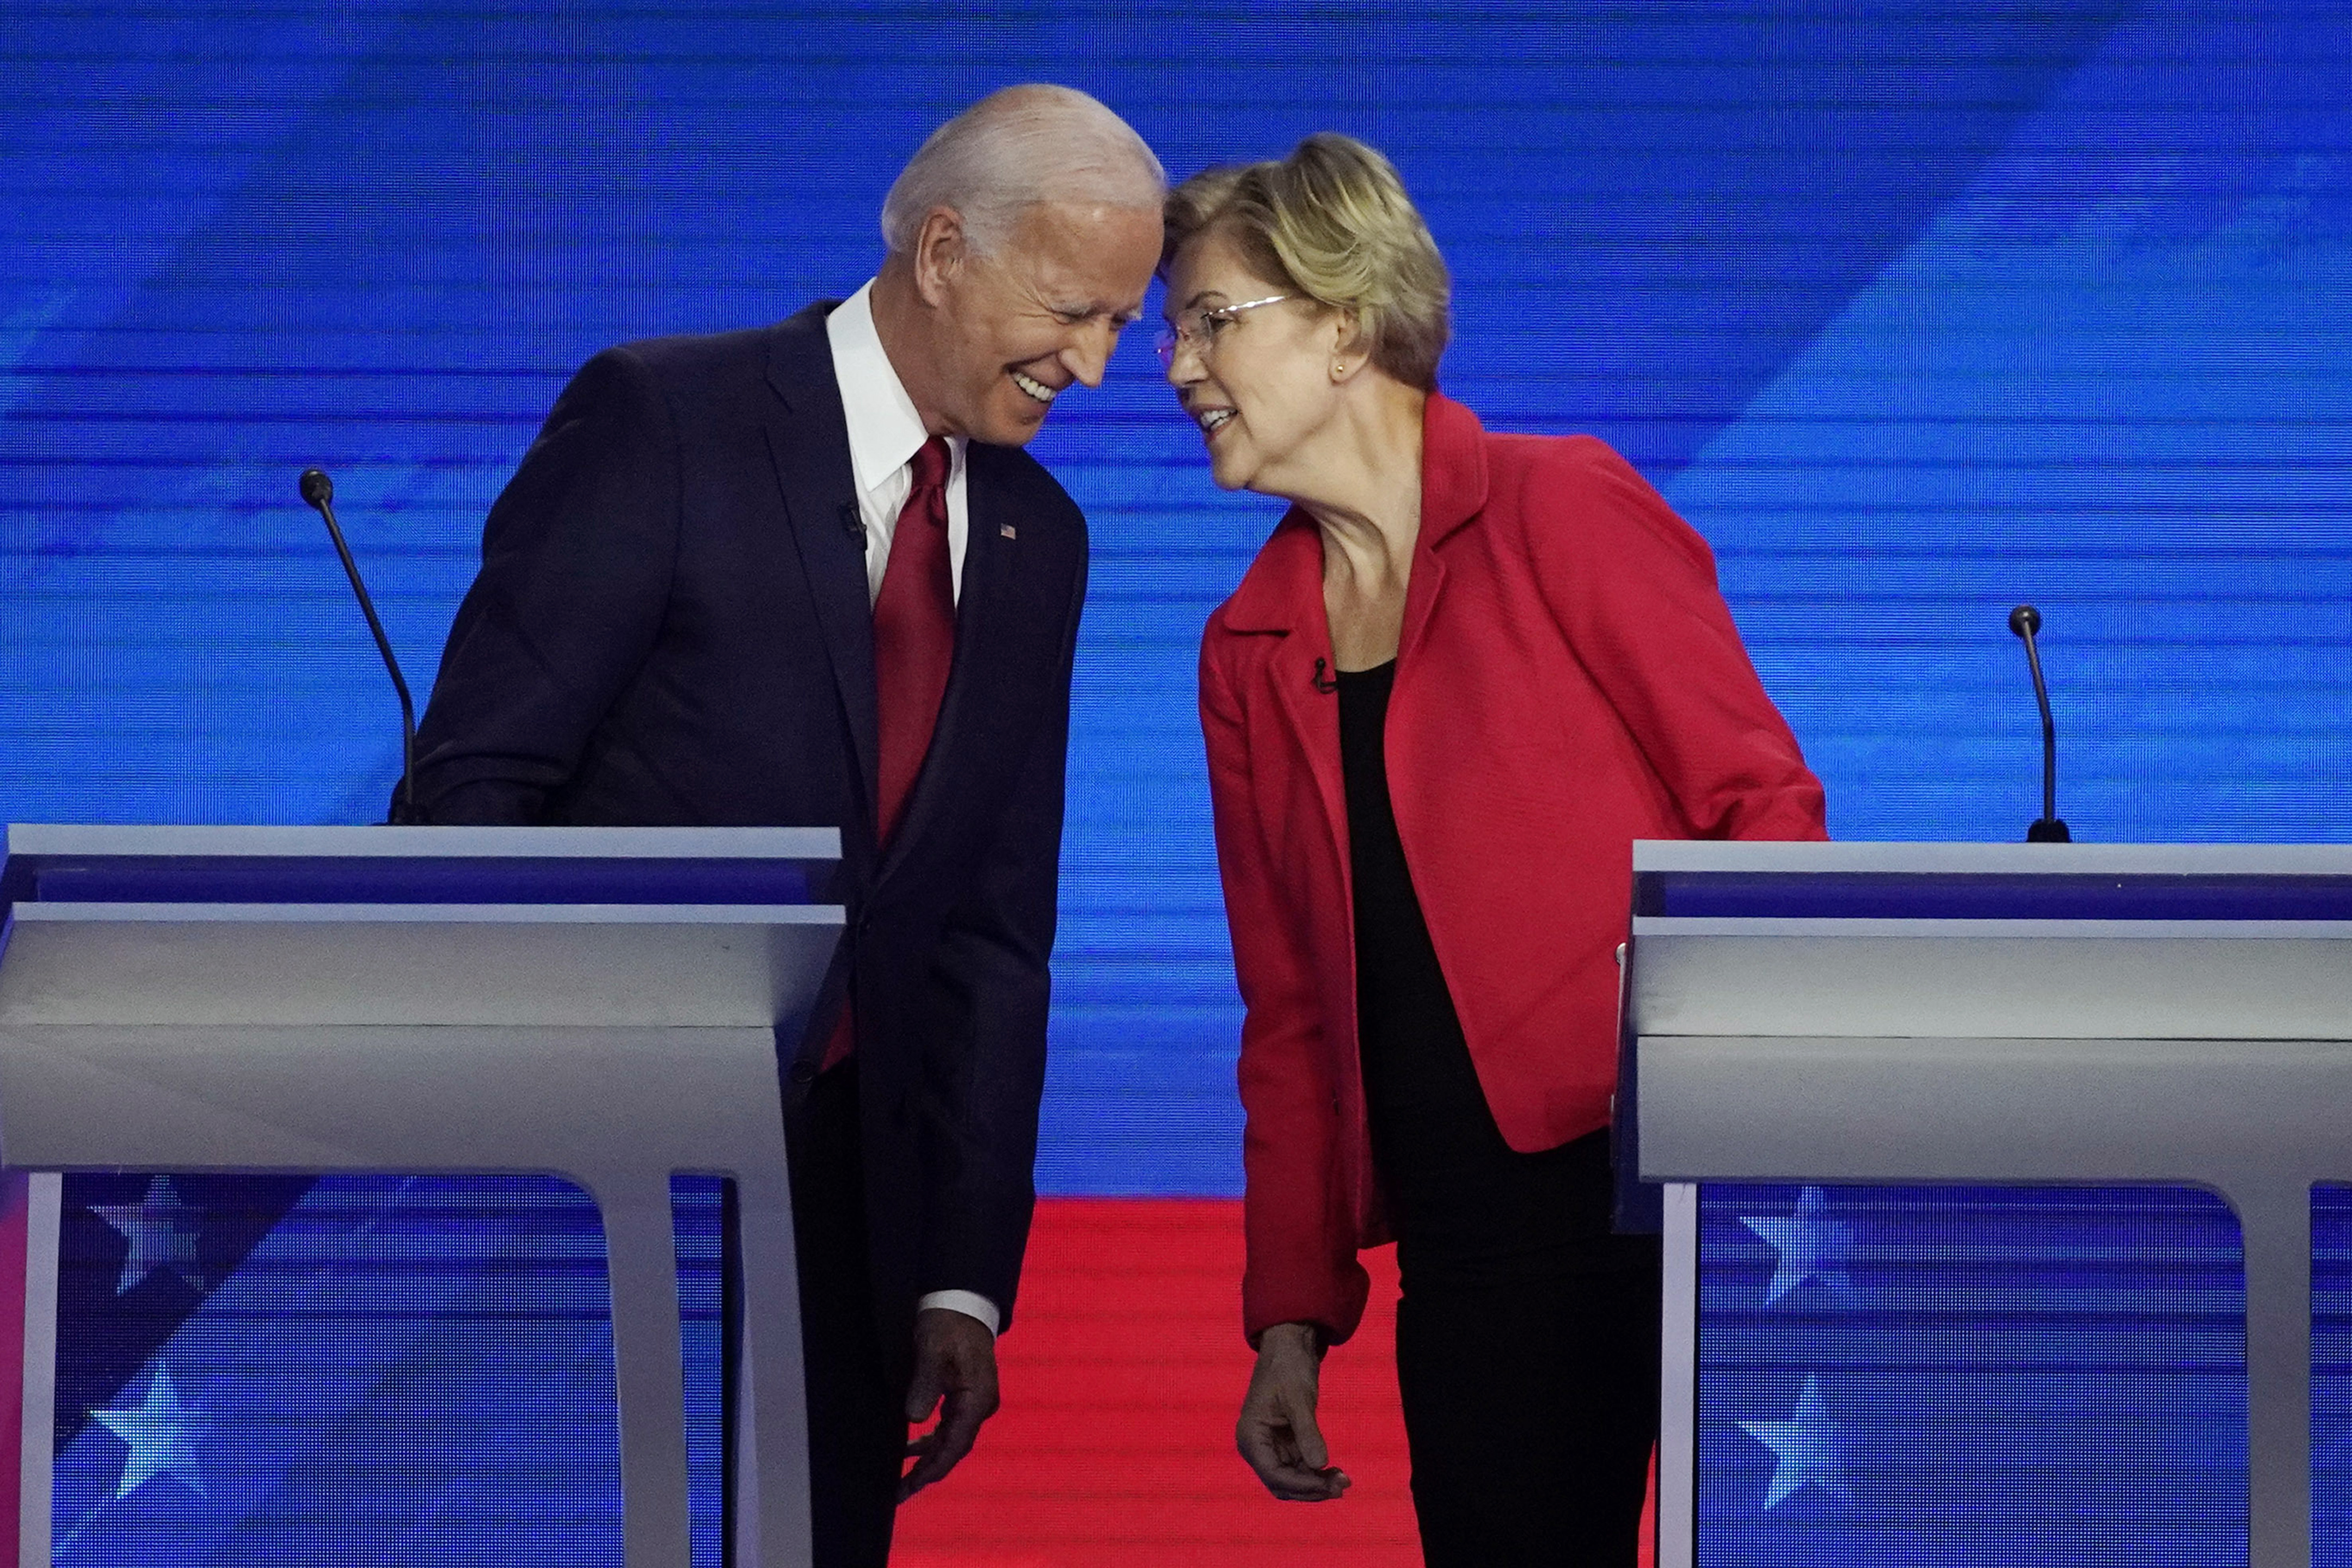 bostonglobe.com - Jess Bidgood - Warren wasn't VP pick, but could be a key player - from inside or outside - in a Biden administration